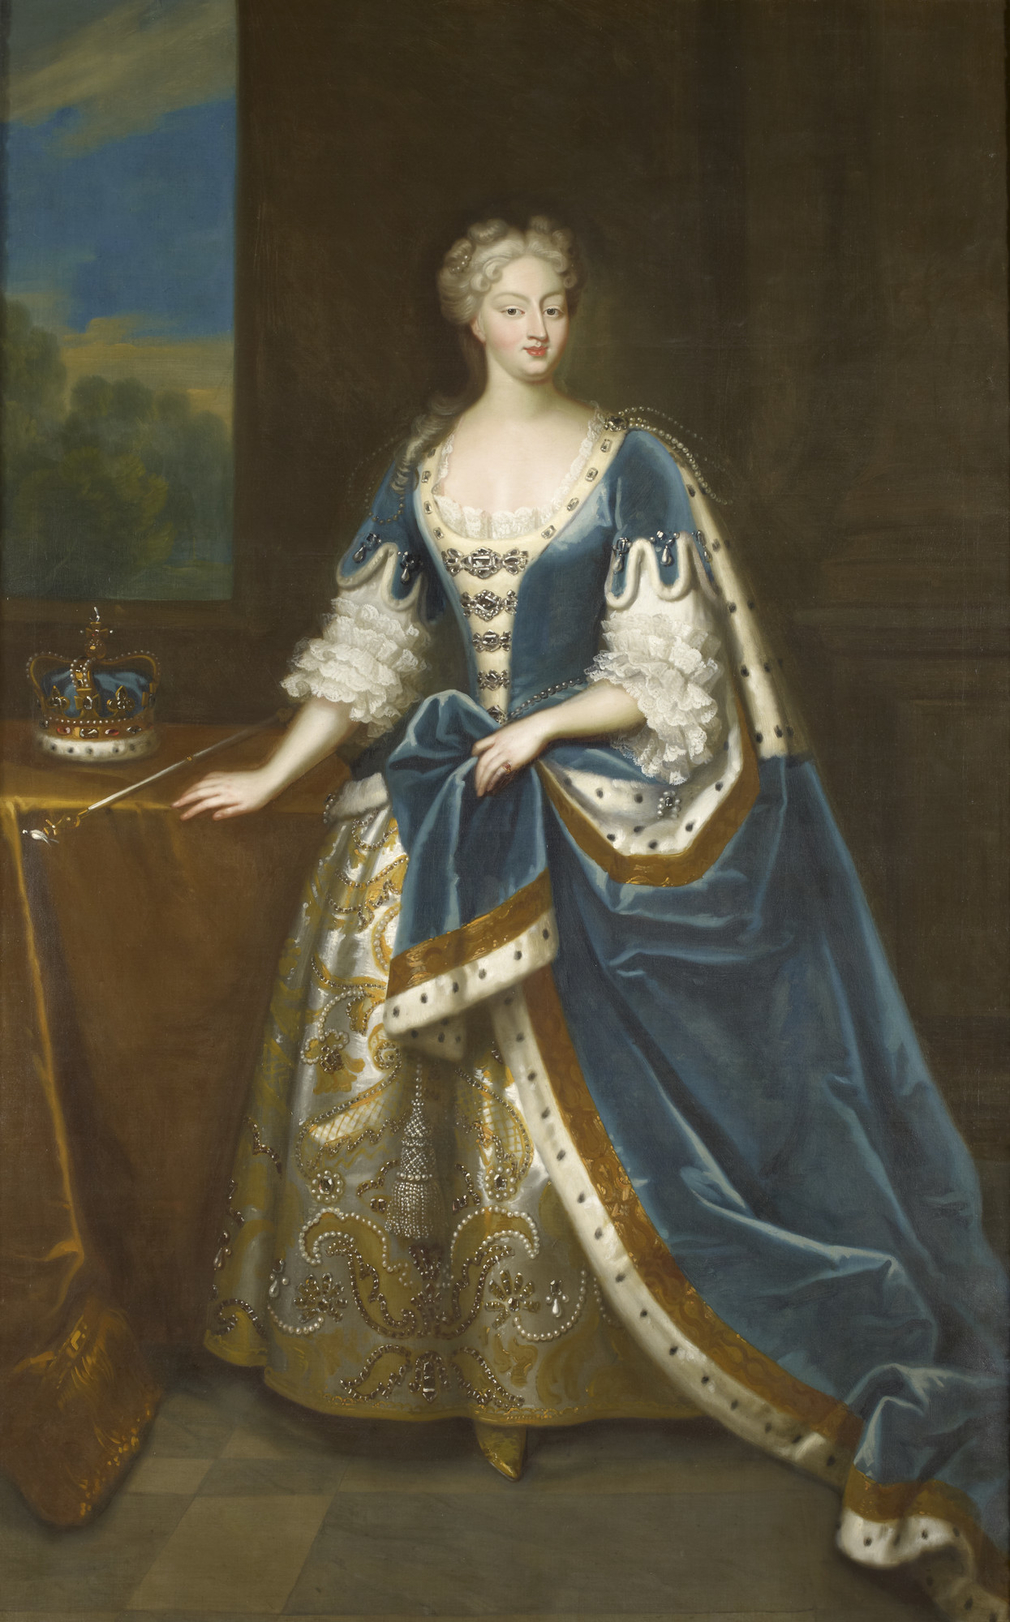 Seeman was an artist of Dutch extraction born in London who worked for George II and Frederick, Prince of Wales, but whose output is represented in the Royal Collection by versions of just two images – official portraits of George II and Queen Caroline